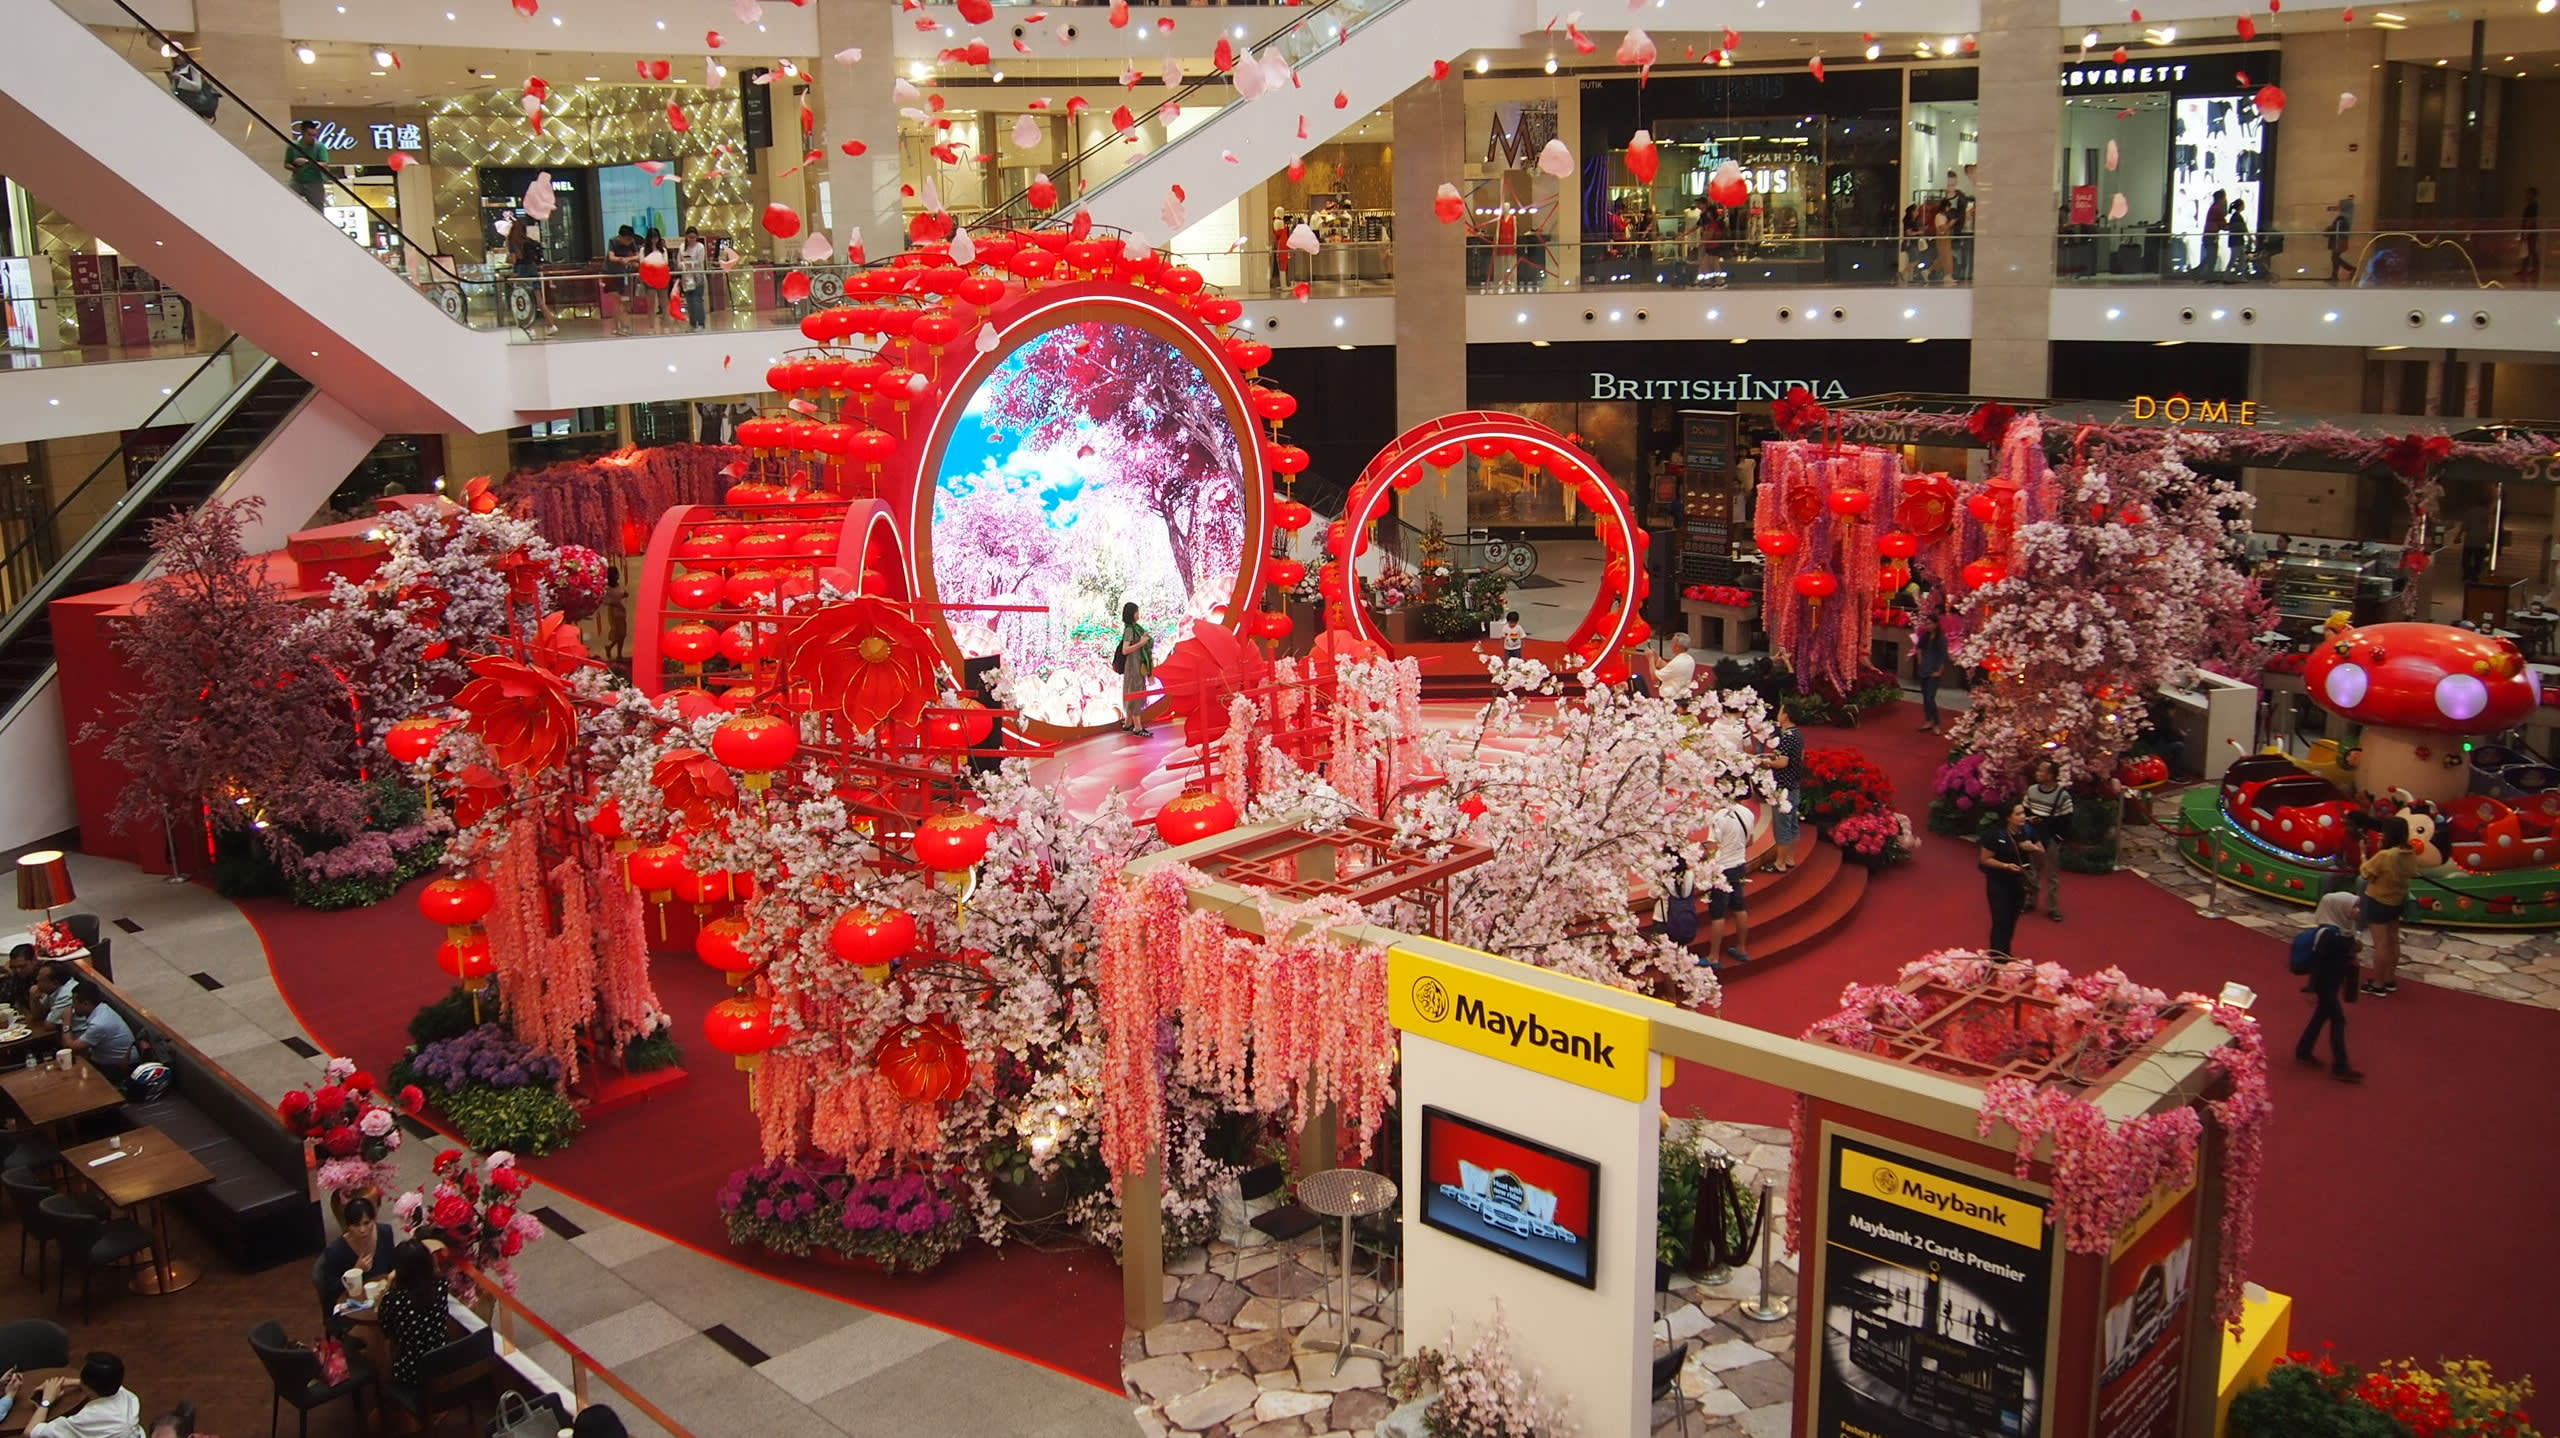 No dog in Malaysia's Lunar New Year decorations - Nikkei ...